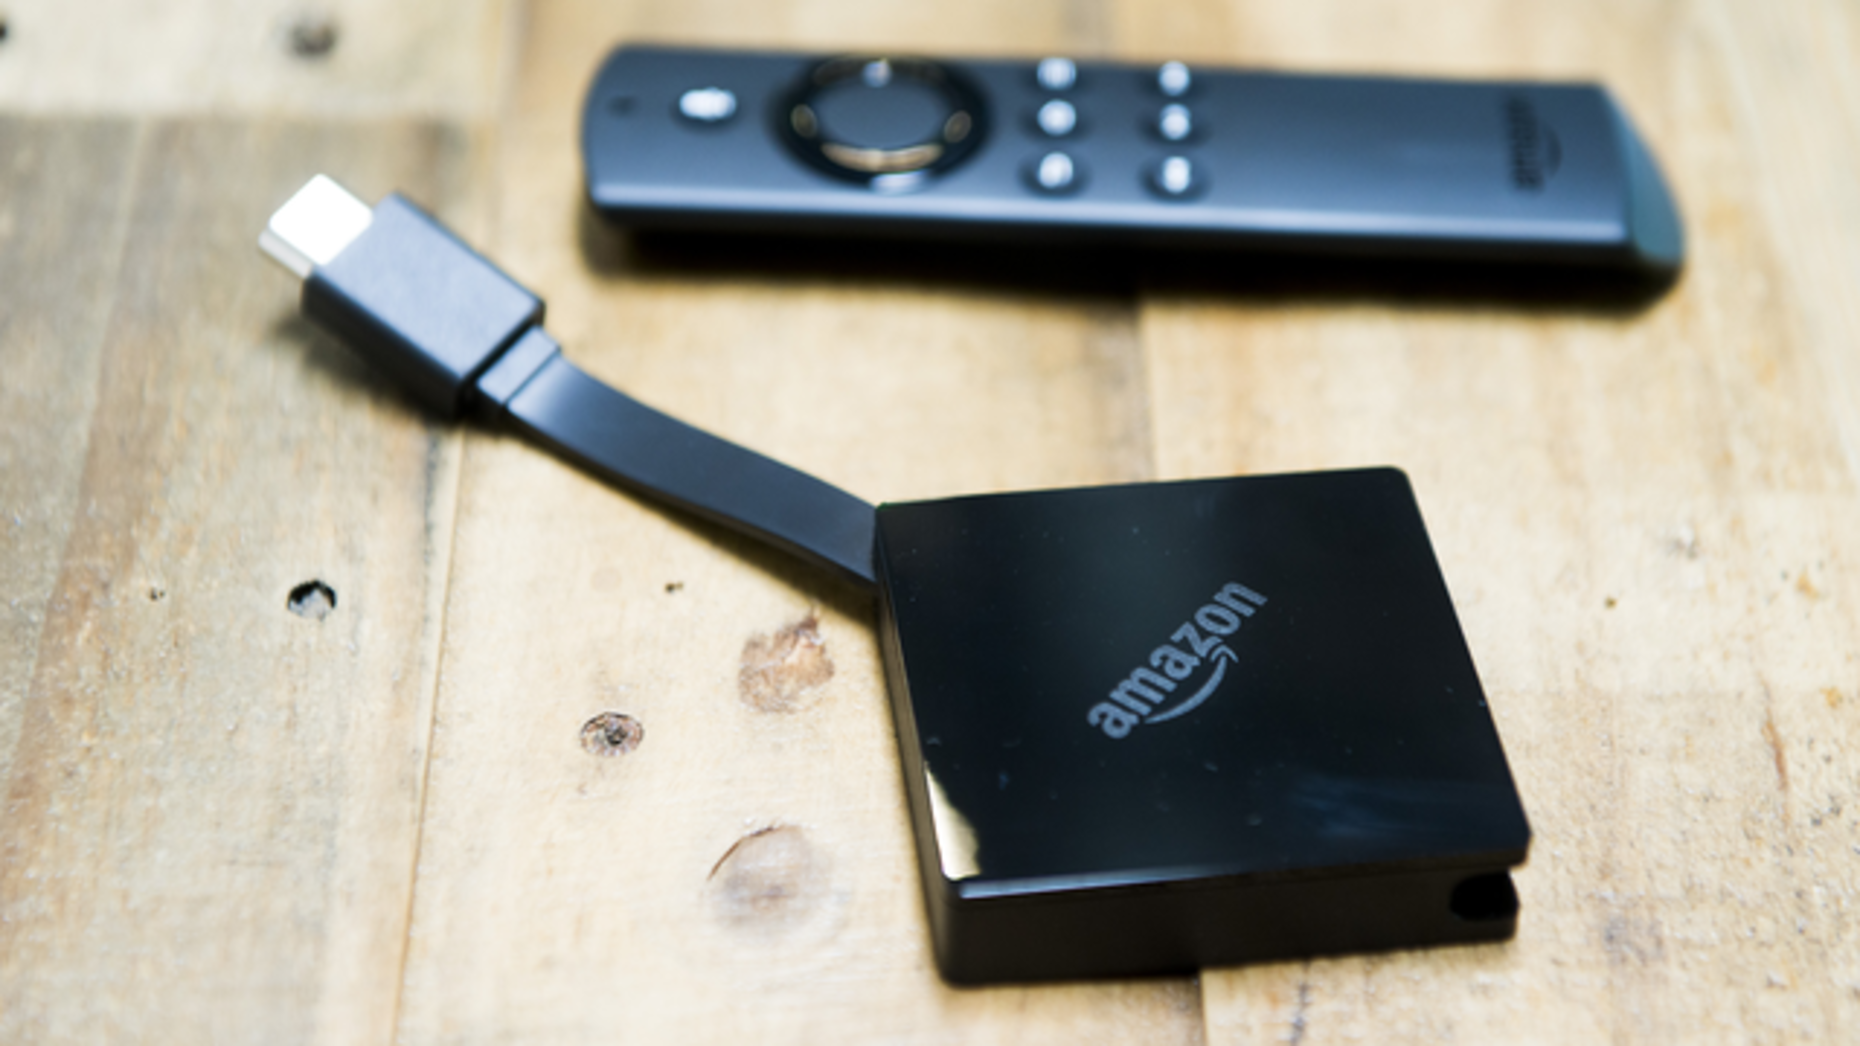 Amazon's latest Fire Stick TV devices introduced last year. Photo by Bloomberg